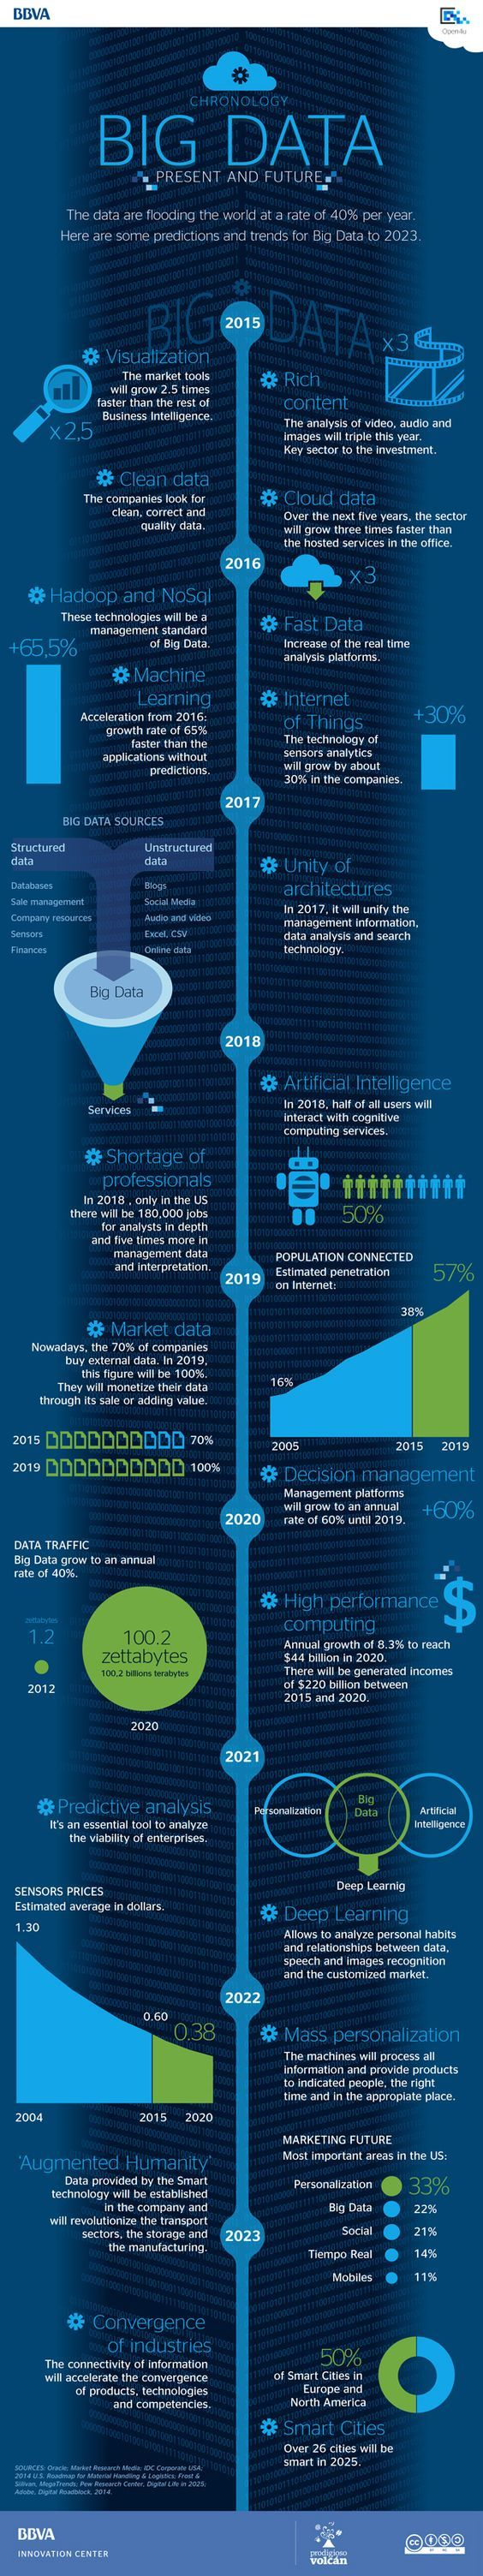 Infographic: Big Data, Present, and Future. Predictions and trends for big data to 2023.